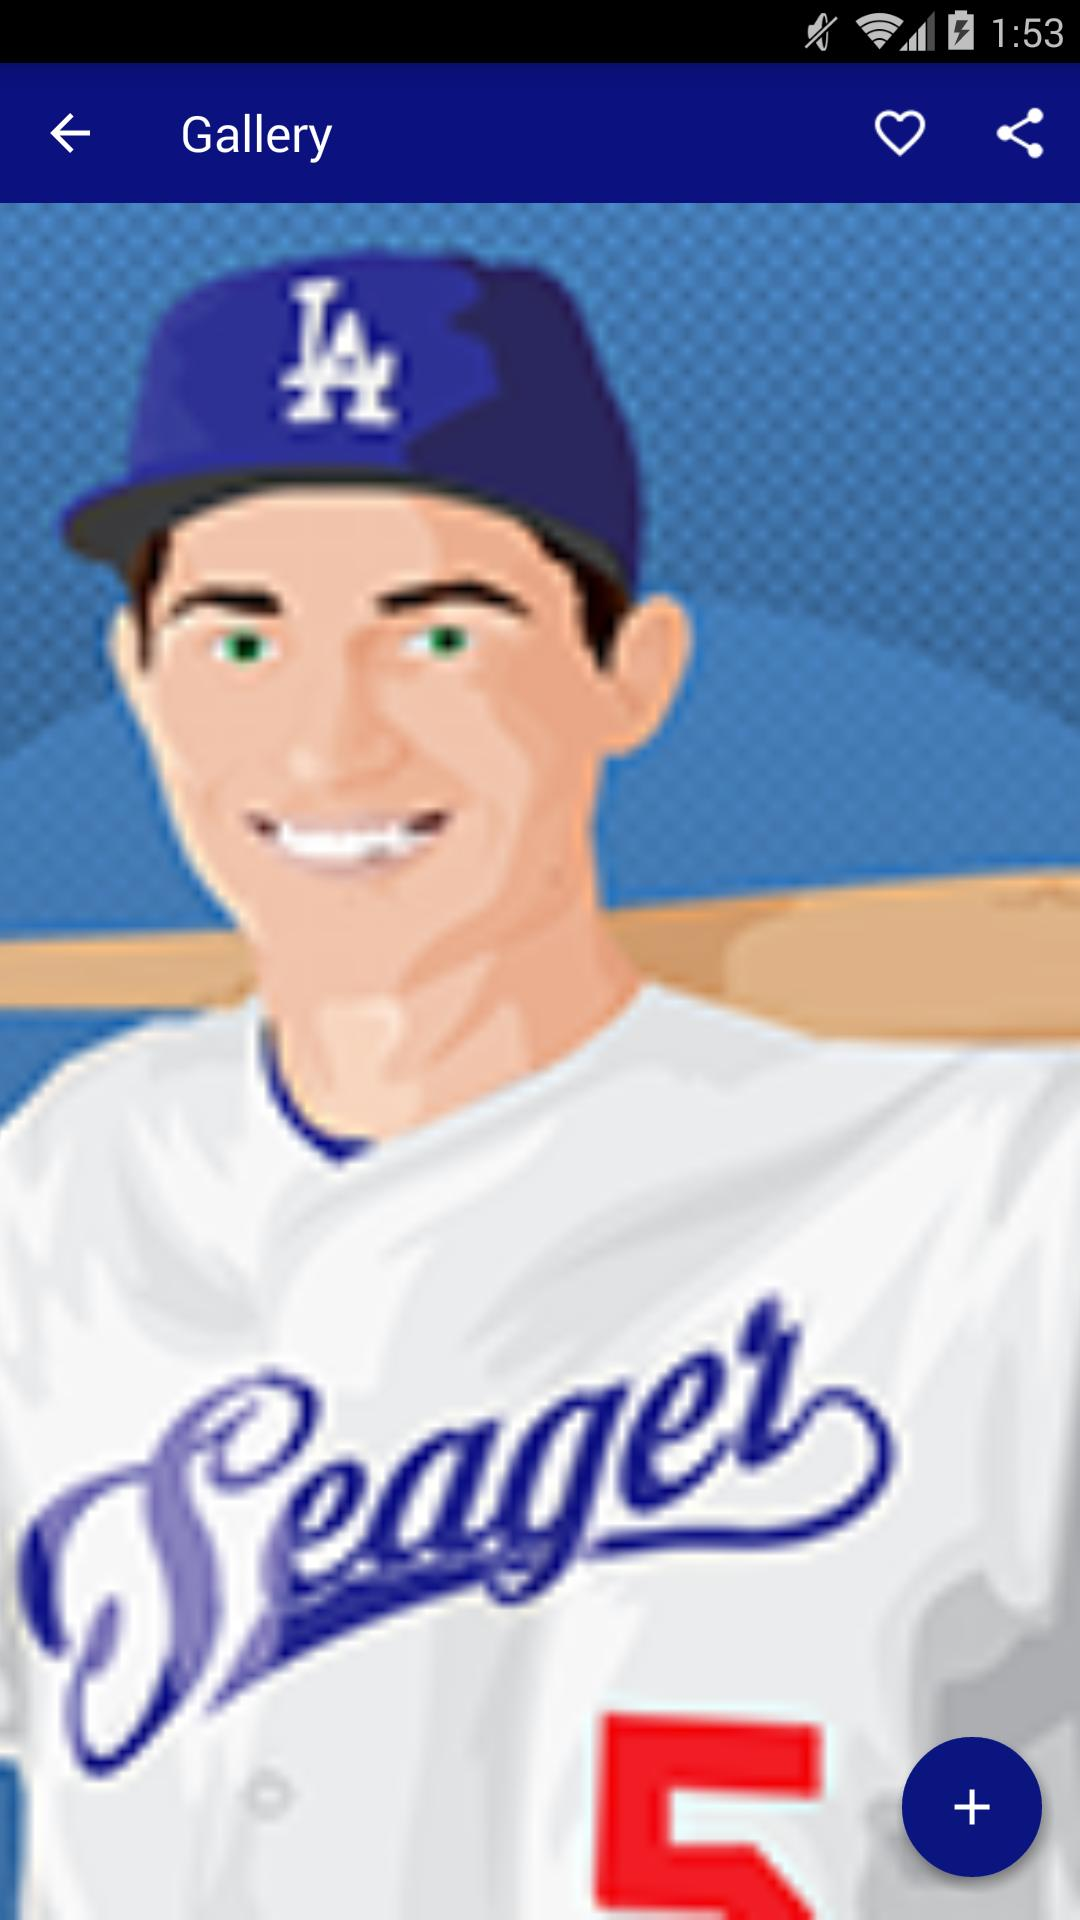 Corey Seager Wallpapers HD MLB for Android   APK Download 1080x1920